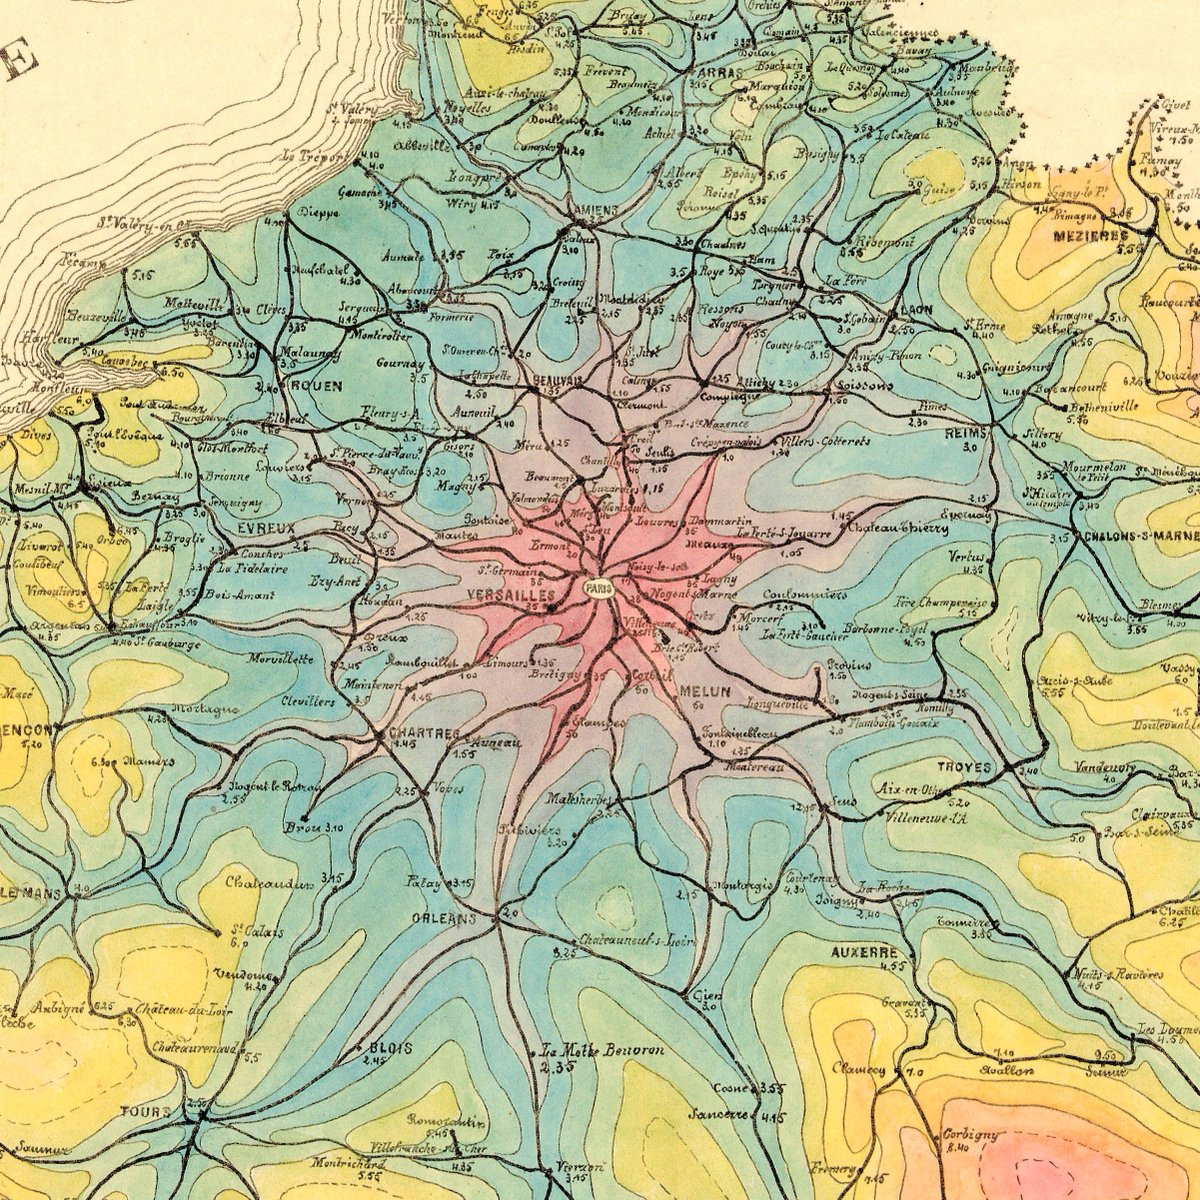 Transit maps on twitter i think im in love a stunning isochrone transit maps on twitter i think im in love a stunning isochrone map of travel times from paris by rail in 1882 making this a very early example of the gumiabroncs Gallery